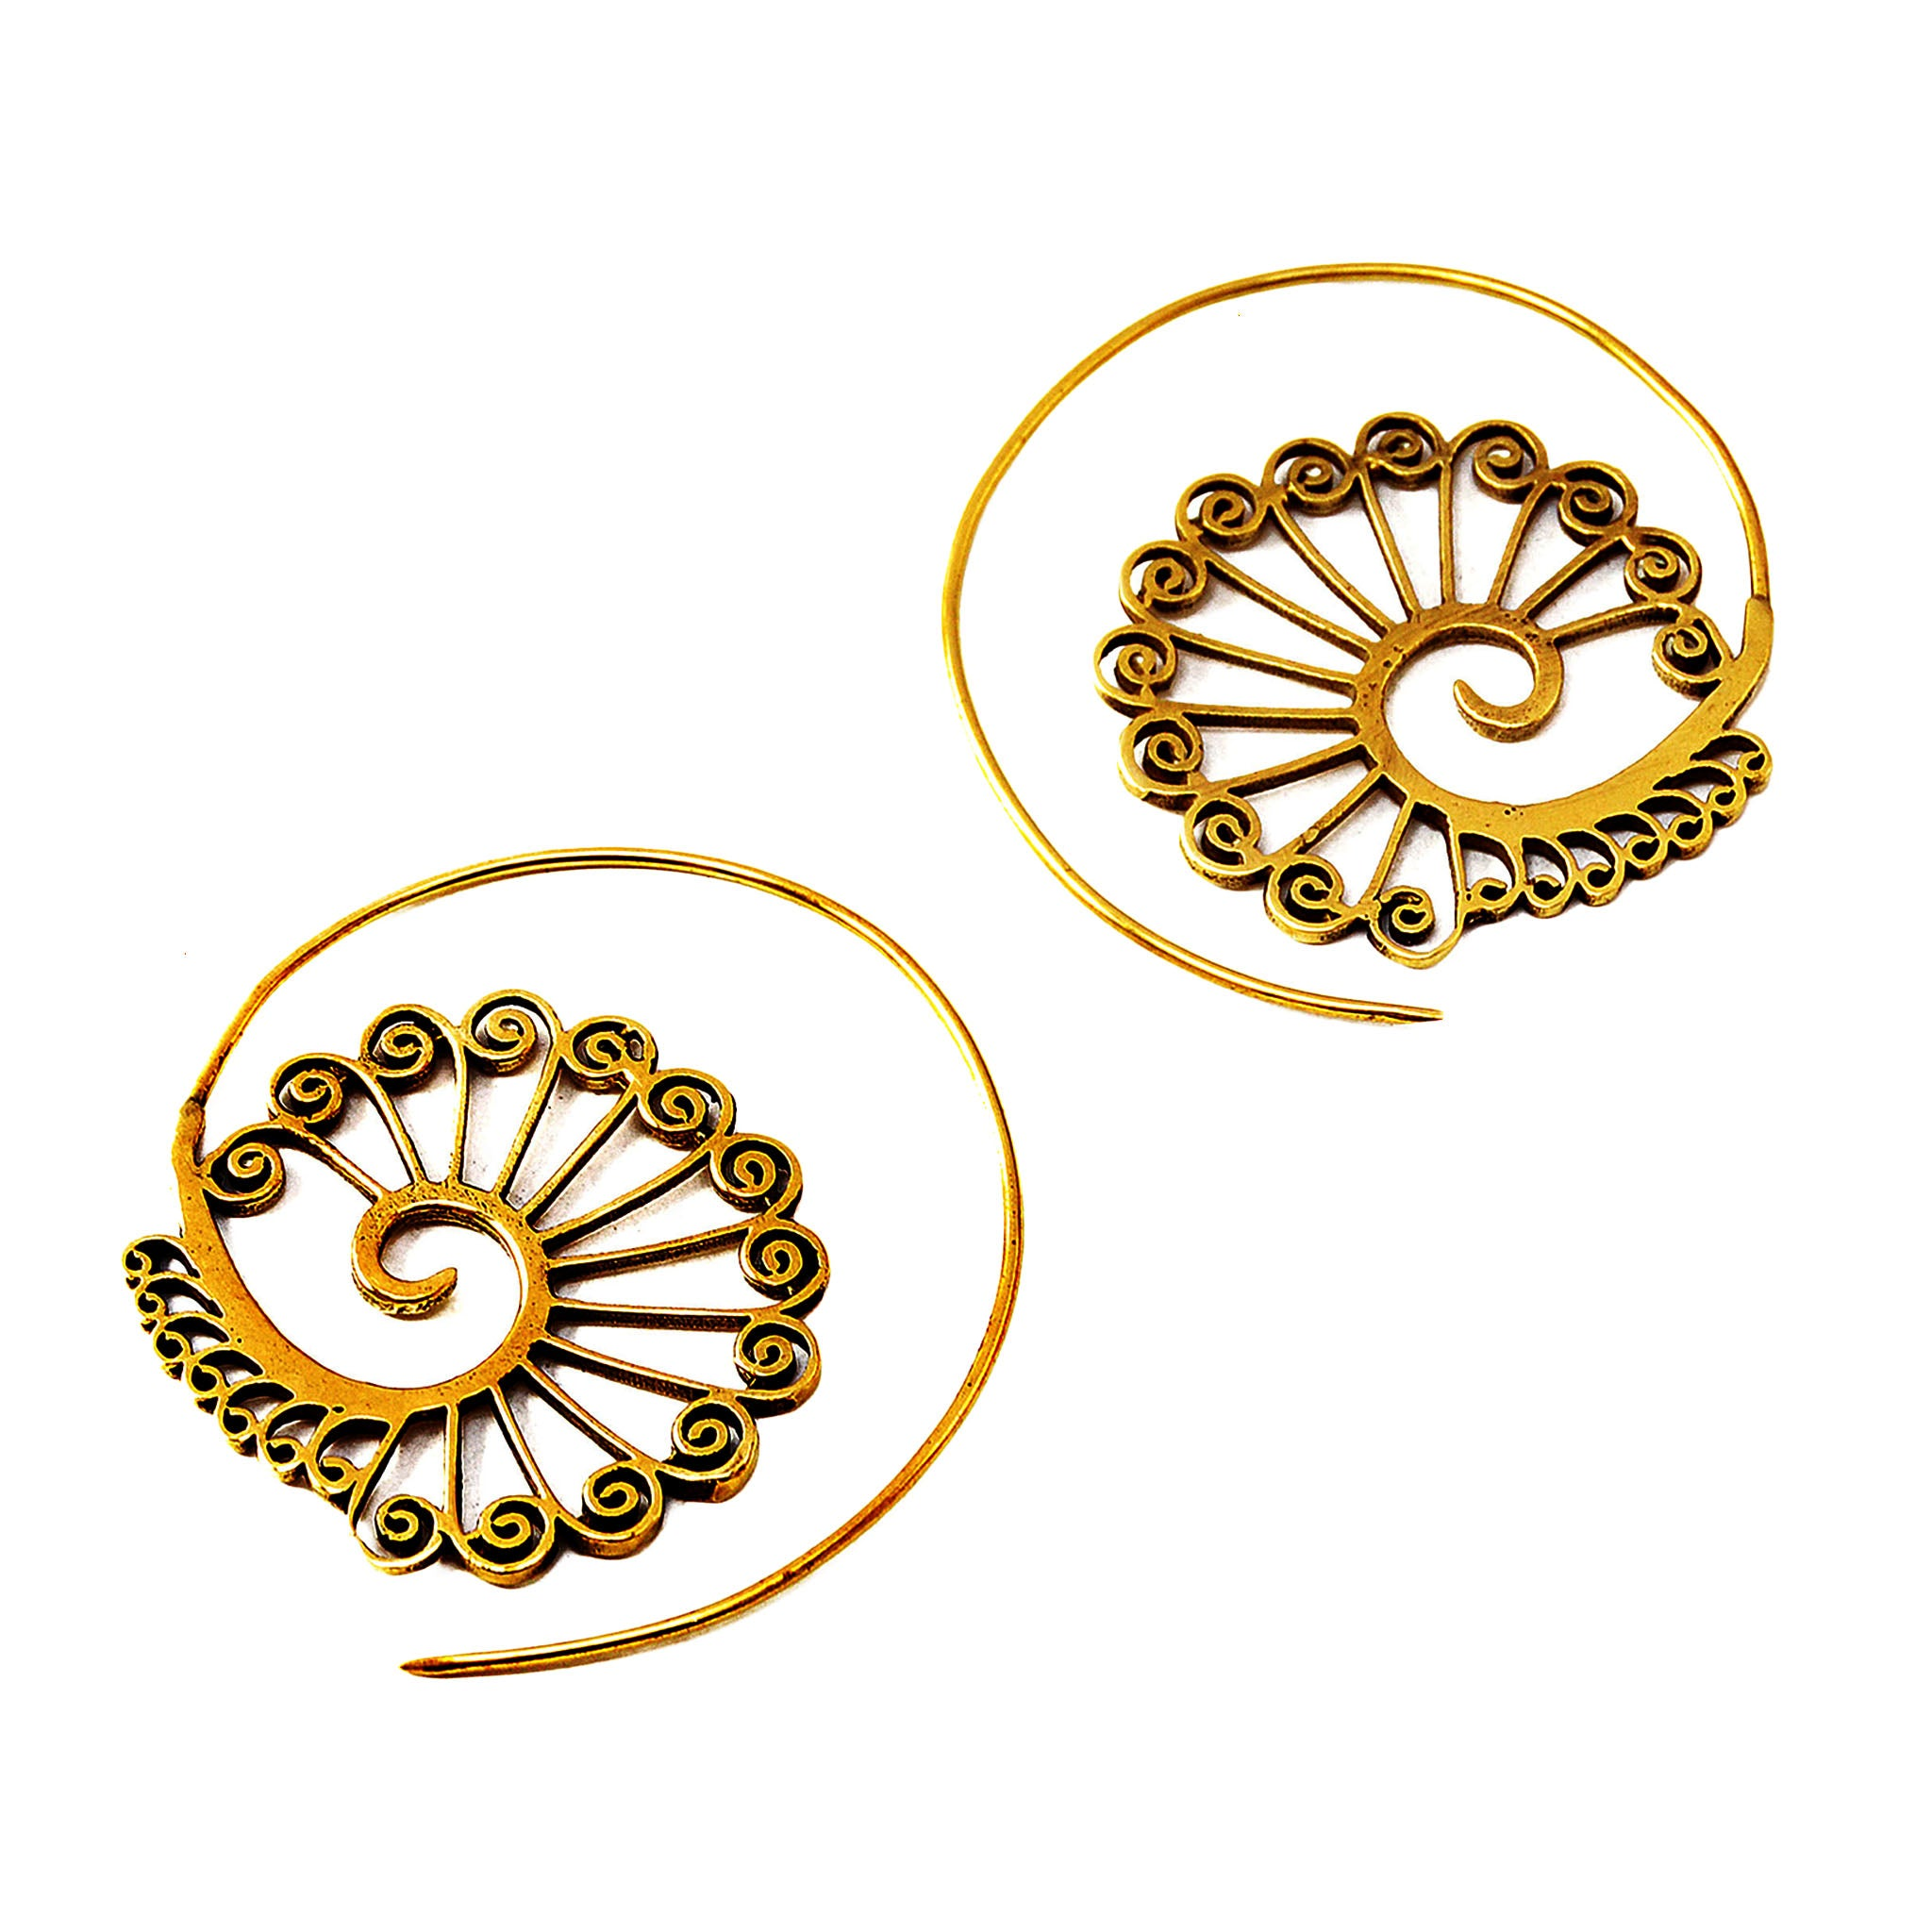 Brass spiral hook earrings